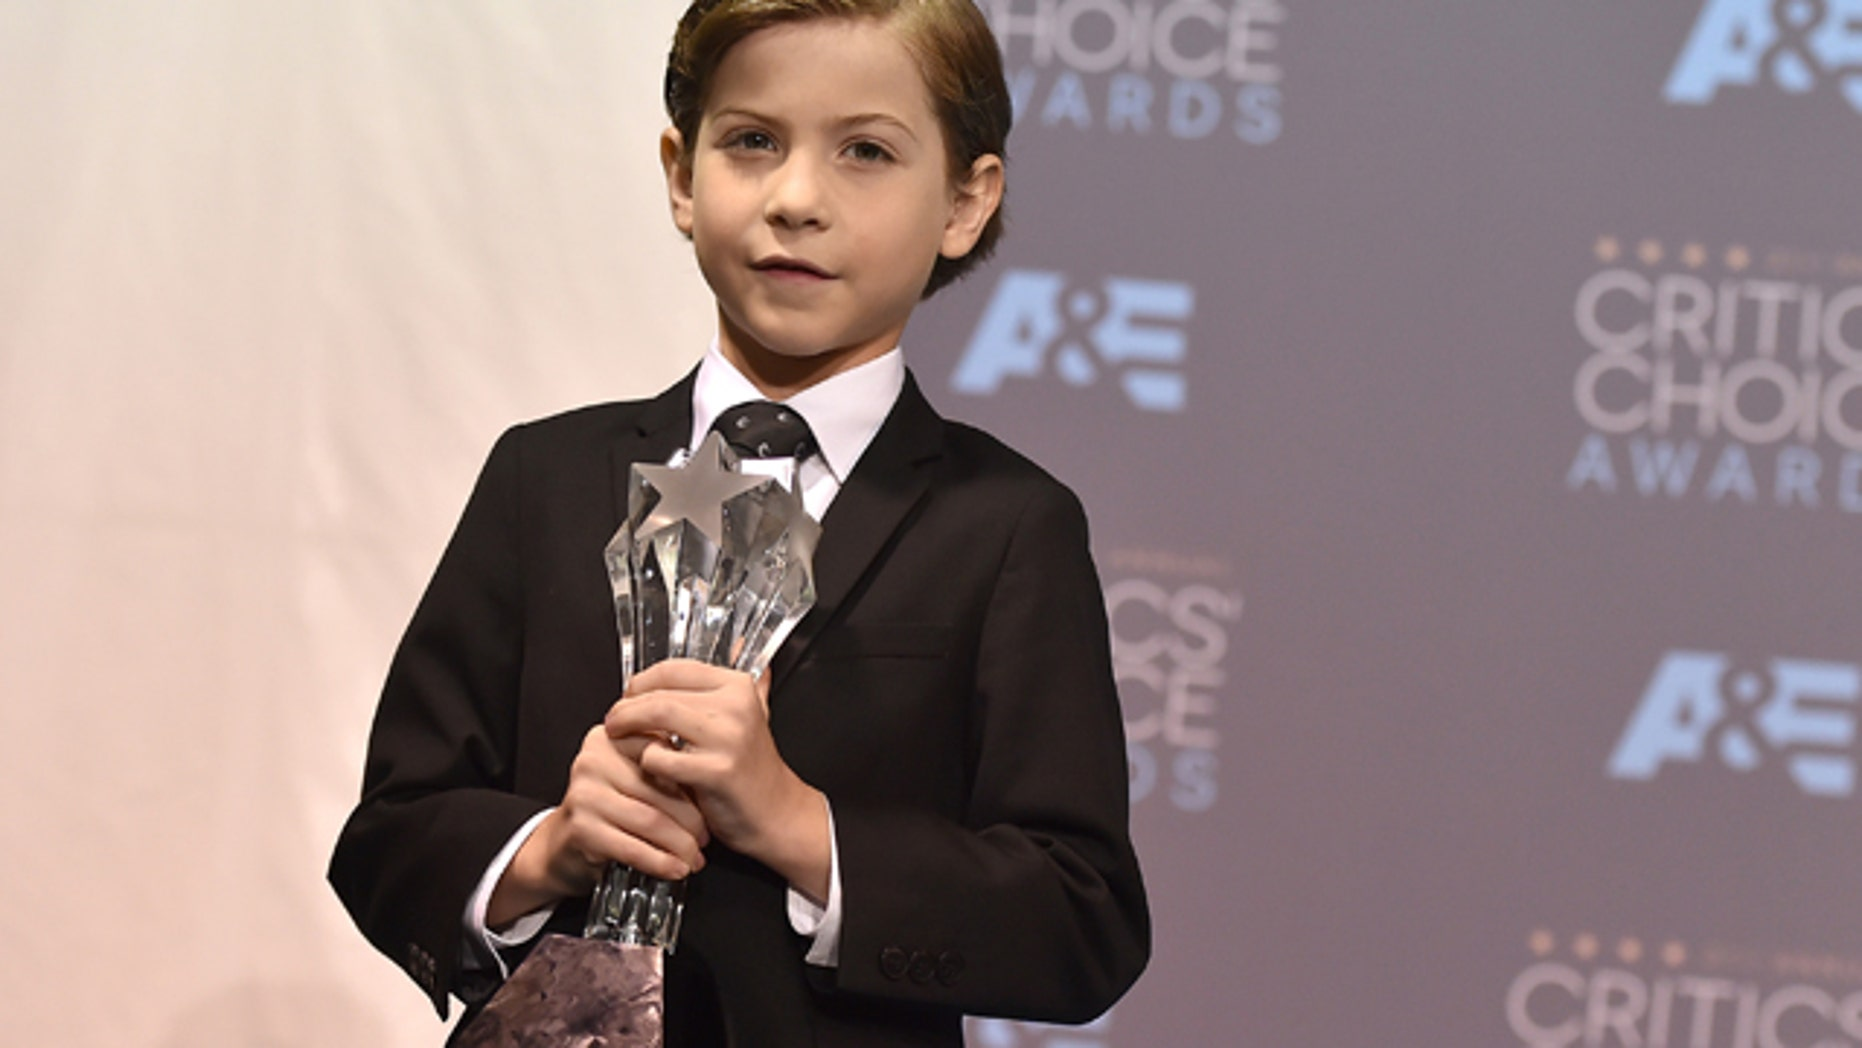 Jan. 17, 2016: Jacob Tremblay poses in the press room with the award for best young actor/actress for 'Room' at the 21st annual Critics' Choice Awards at the Barker Hangar in Santa Monica, Calif. (Photo by Jordan Strauss/Invision/AP)